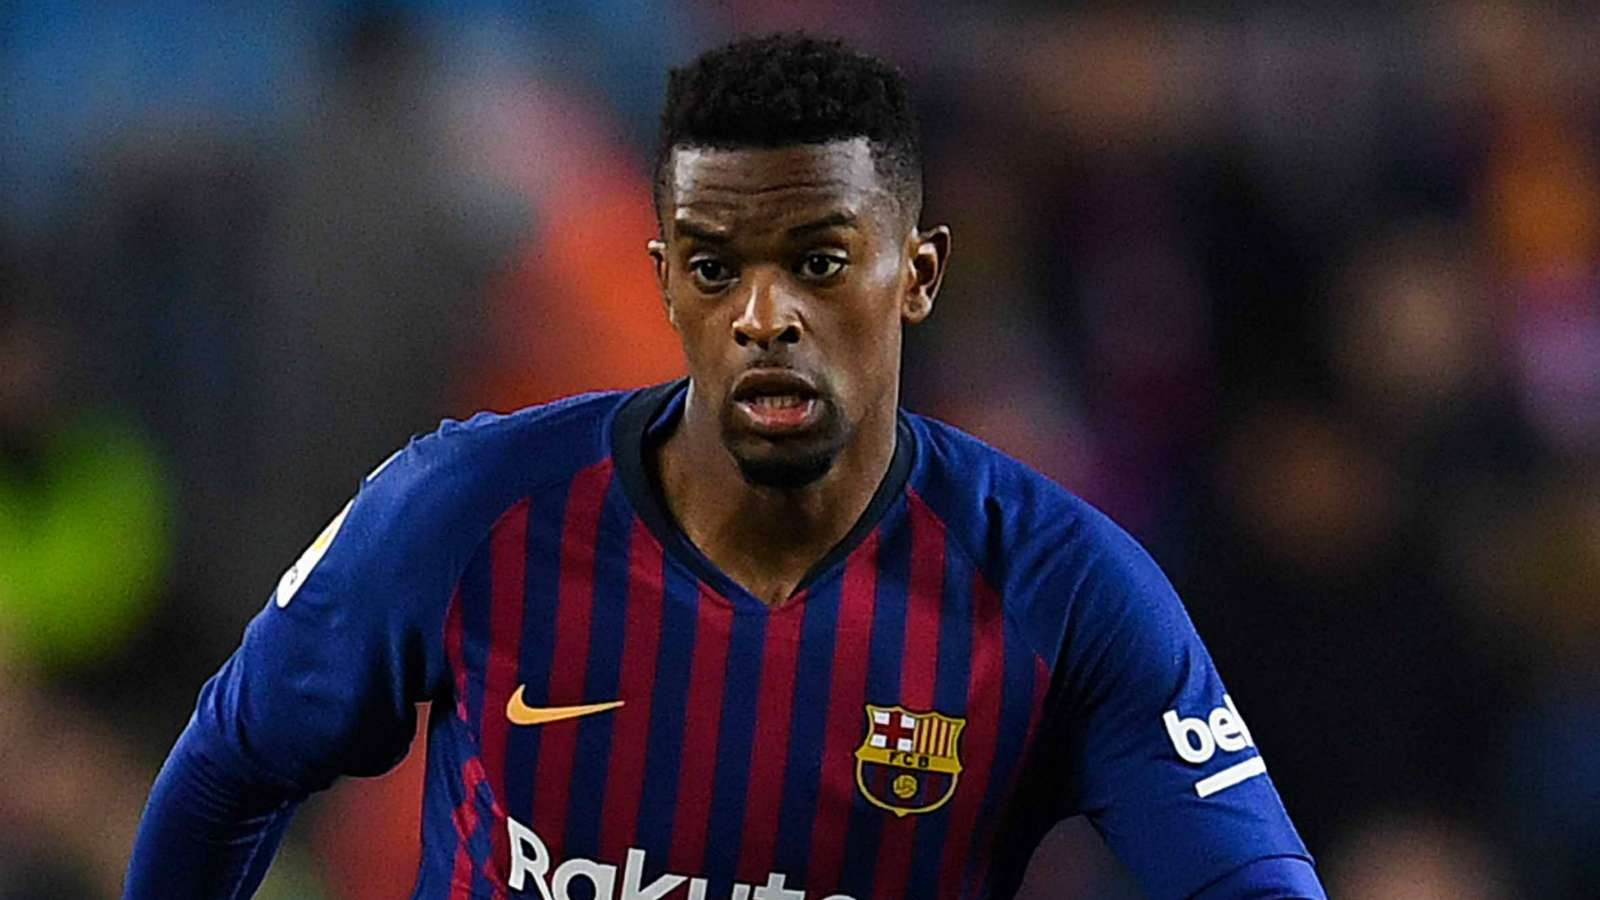 Man United open talks to sign semedo  - Bóng Đá